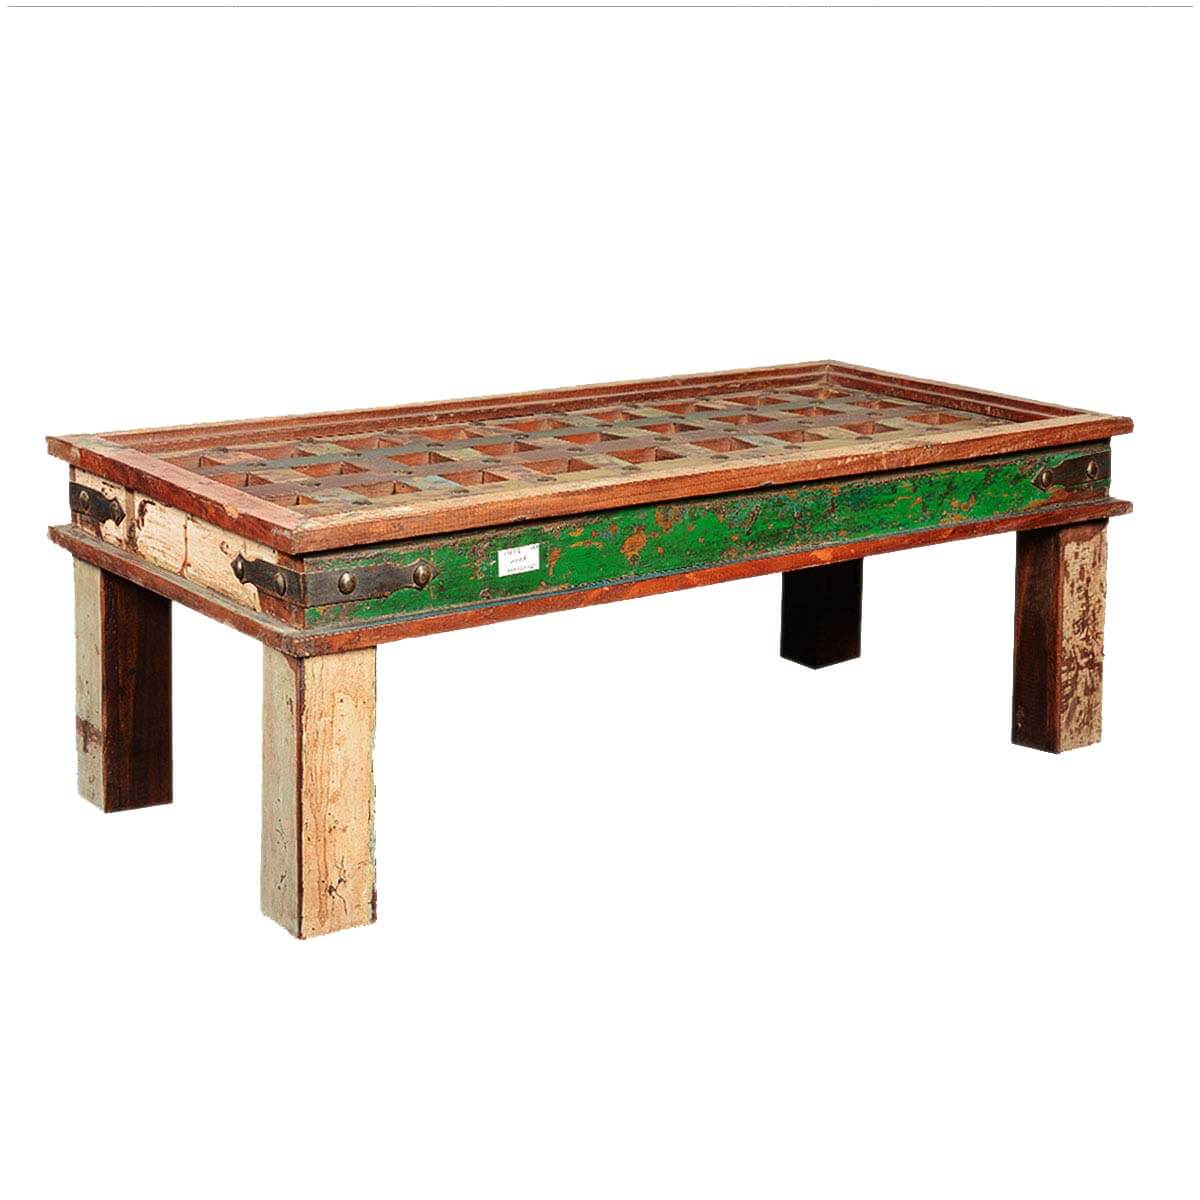 French Wood Coffee Table: Rustic Coffee Table French Quarter Reclaimed Wood Lattice Top